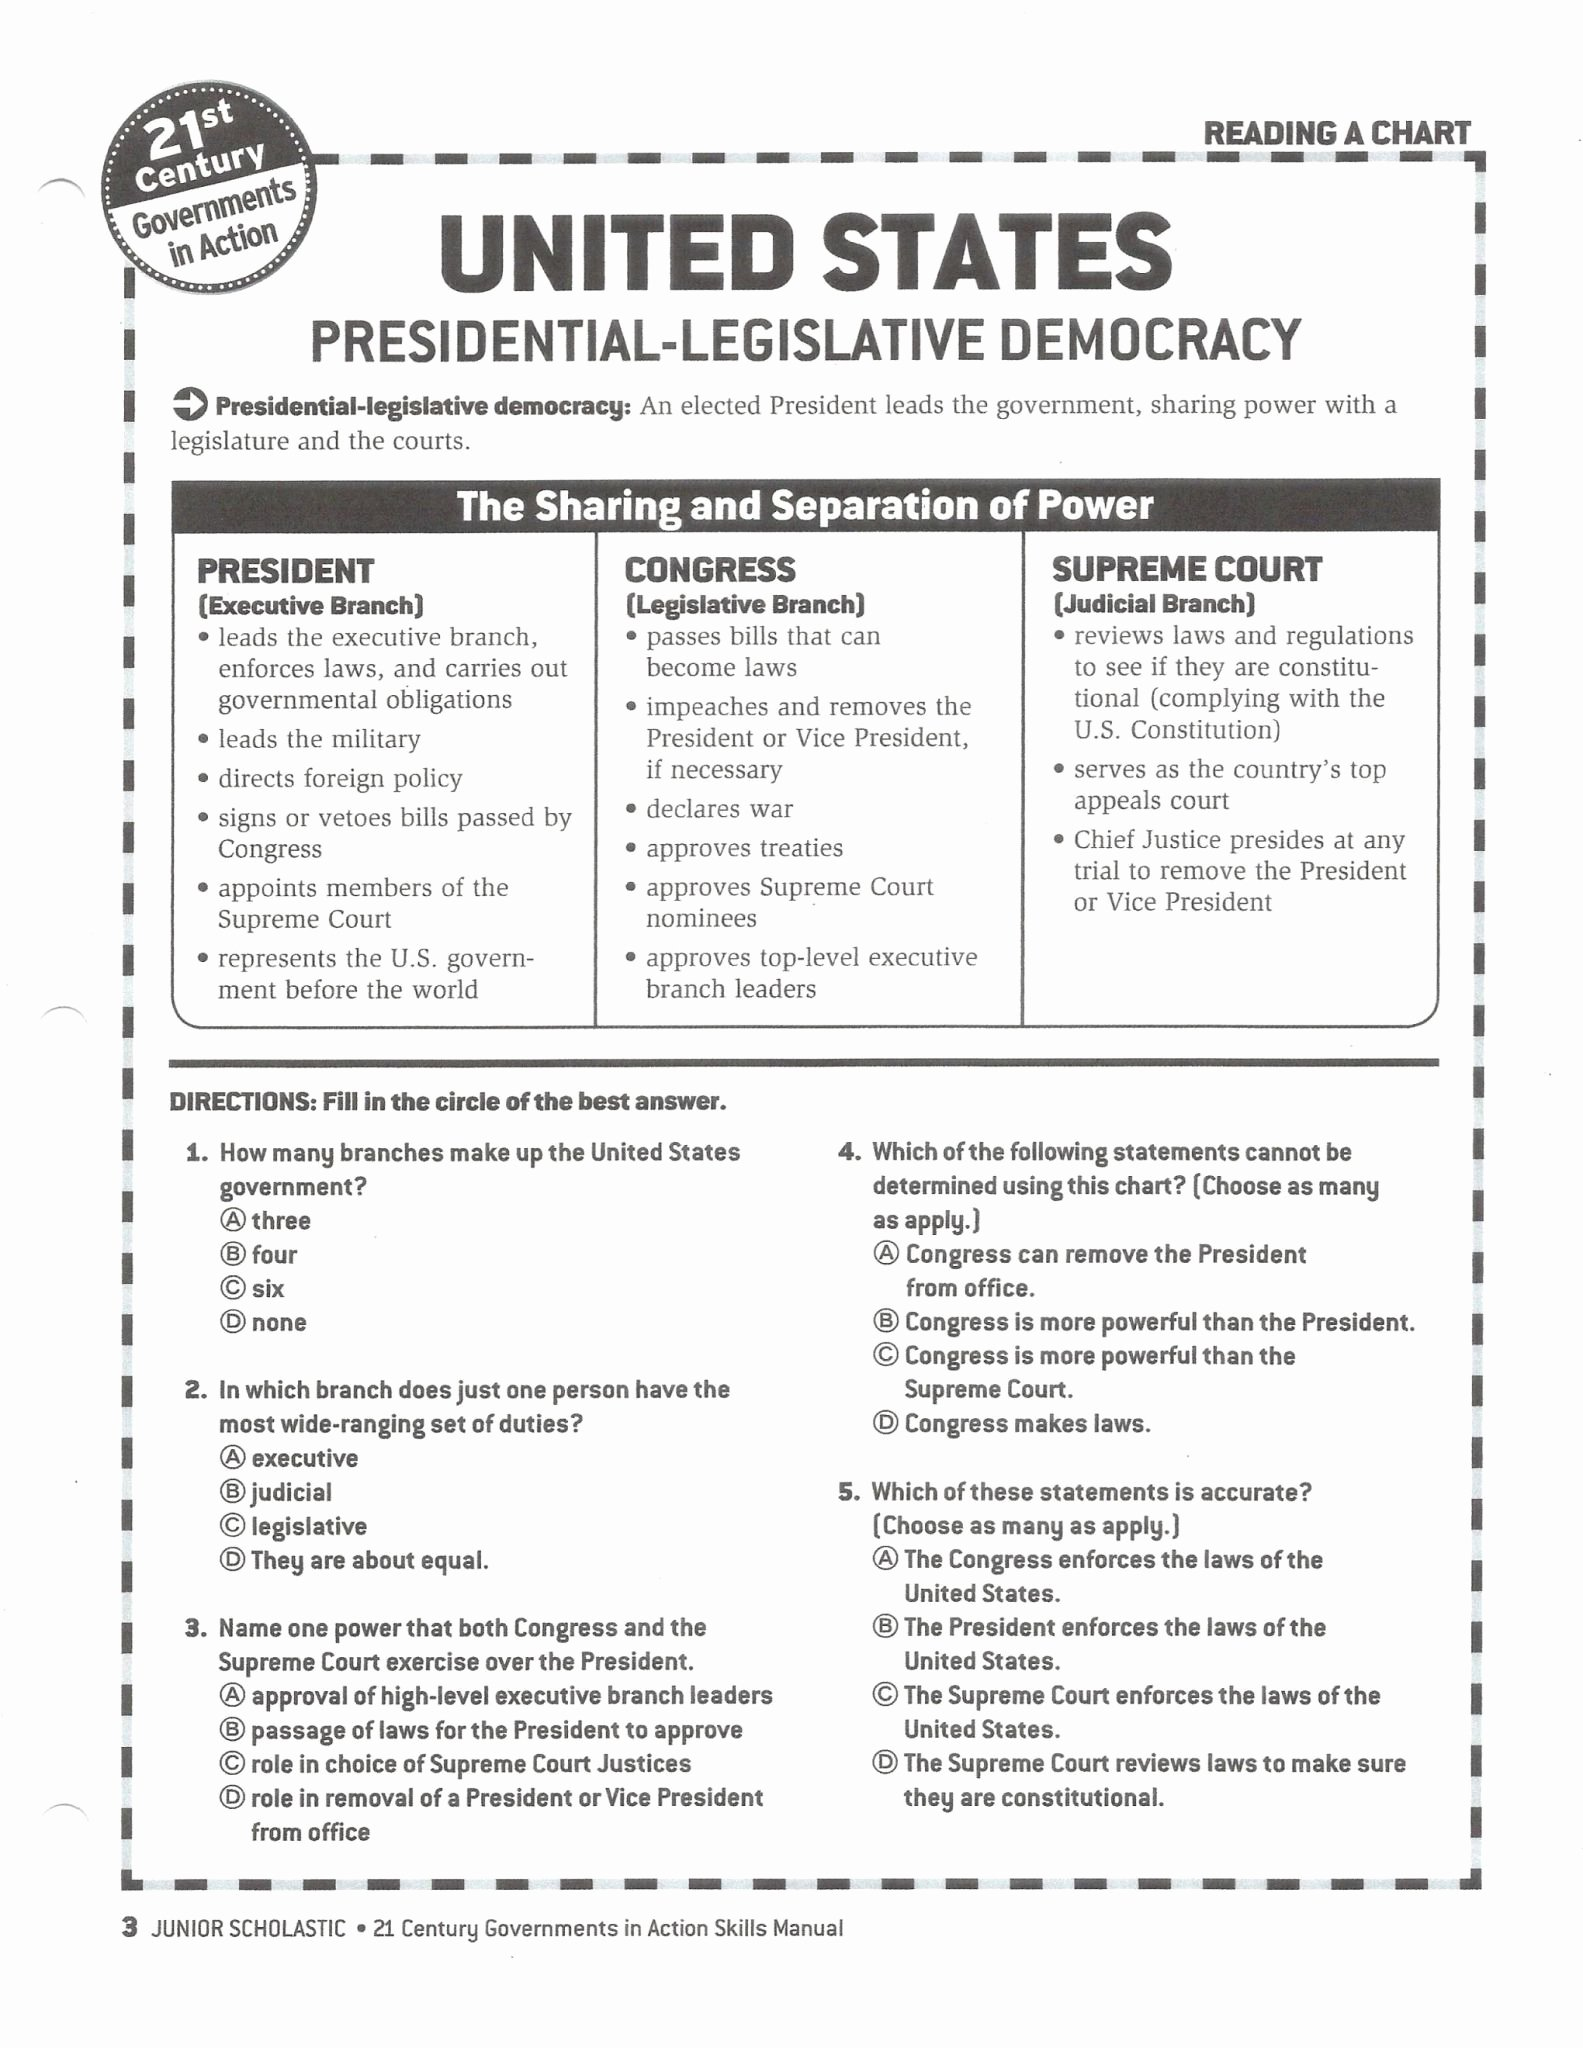 Accuracy and Precision Worksheet Answers Fresh Accuracy and Precision Worksheet